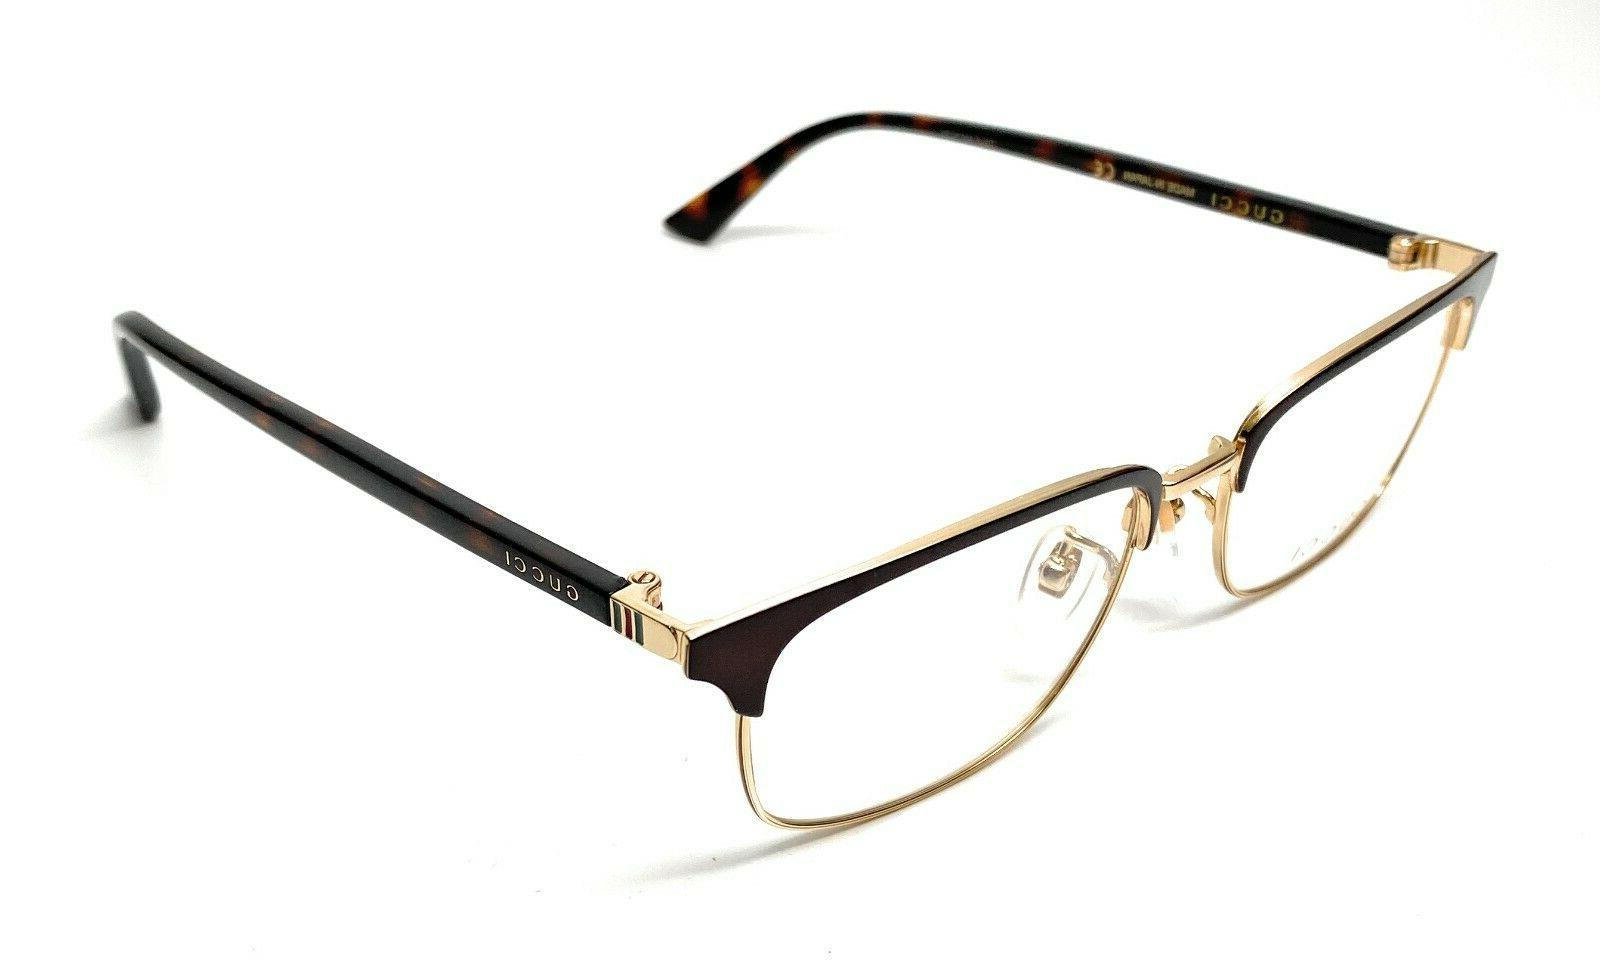 Gucci Eyeglasses GG0131O GG/0131/O 002 Brown/Havana/Gold Opt